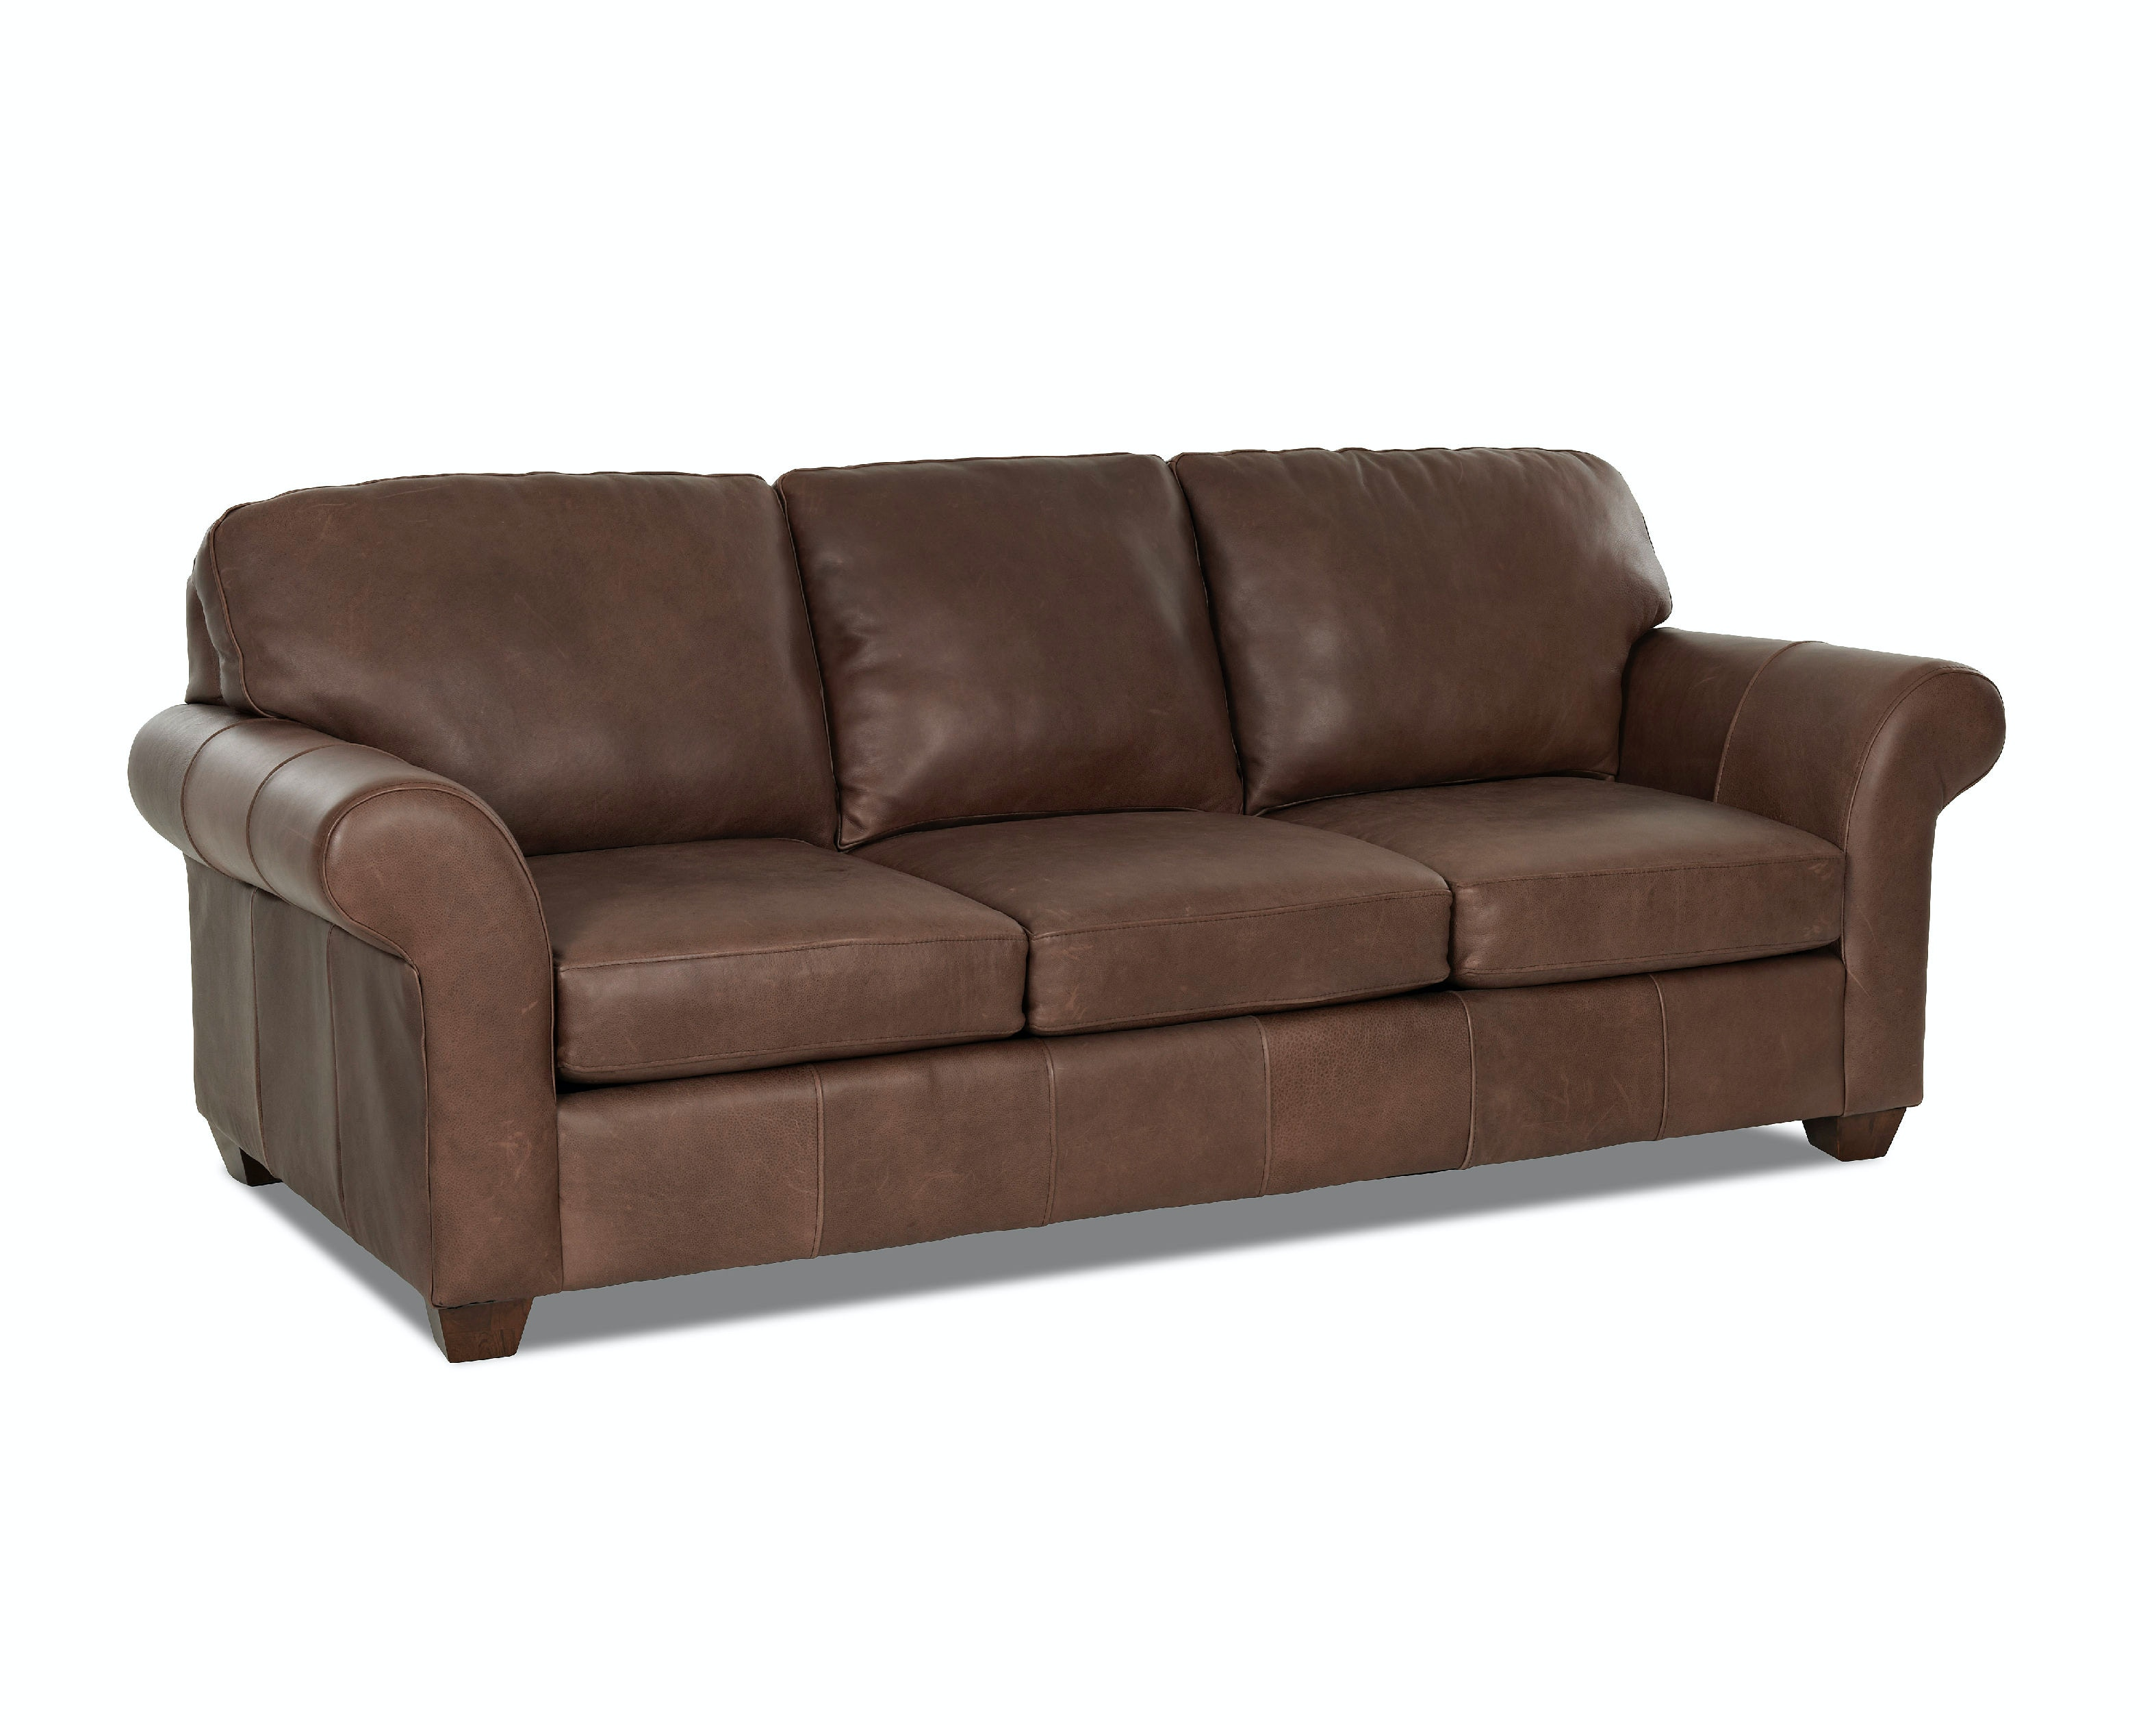 leather sofas charlotte nc bhs michigan sofa north carolina chesterfield modern